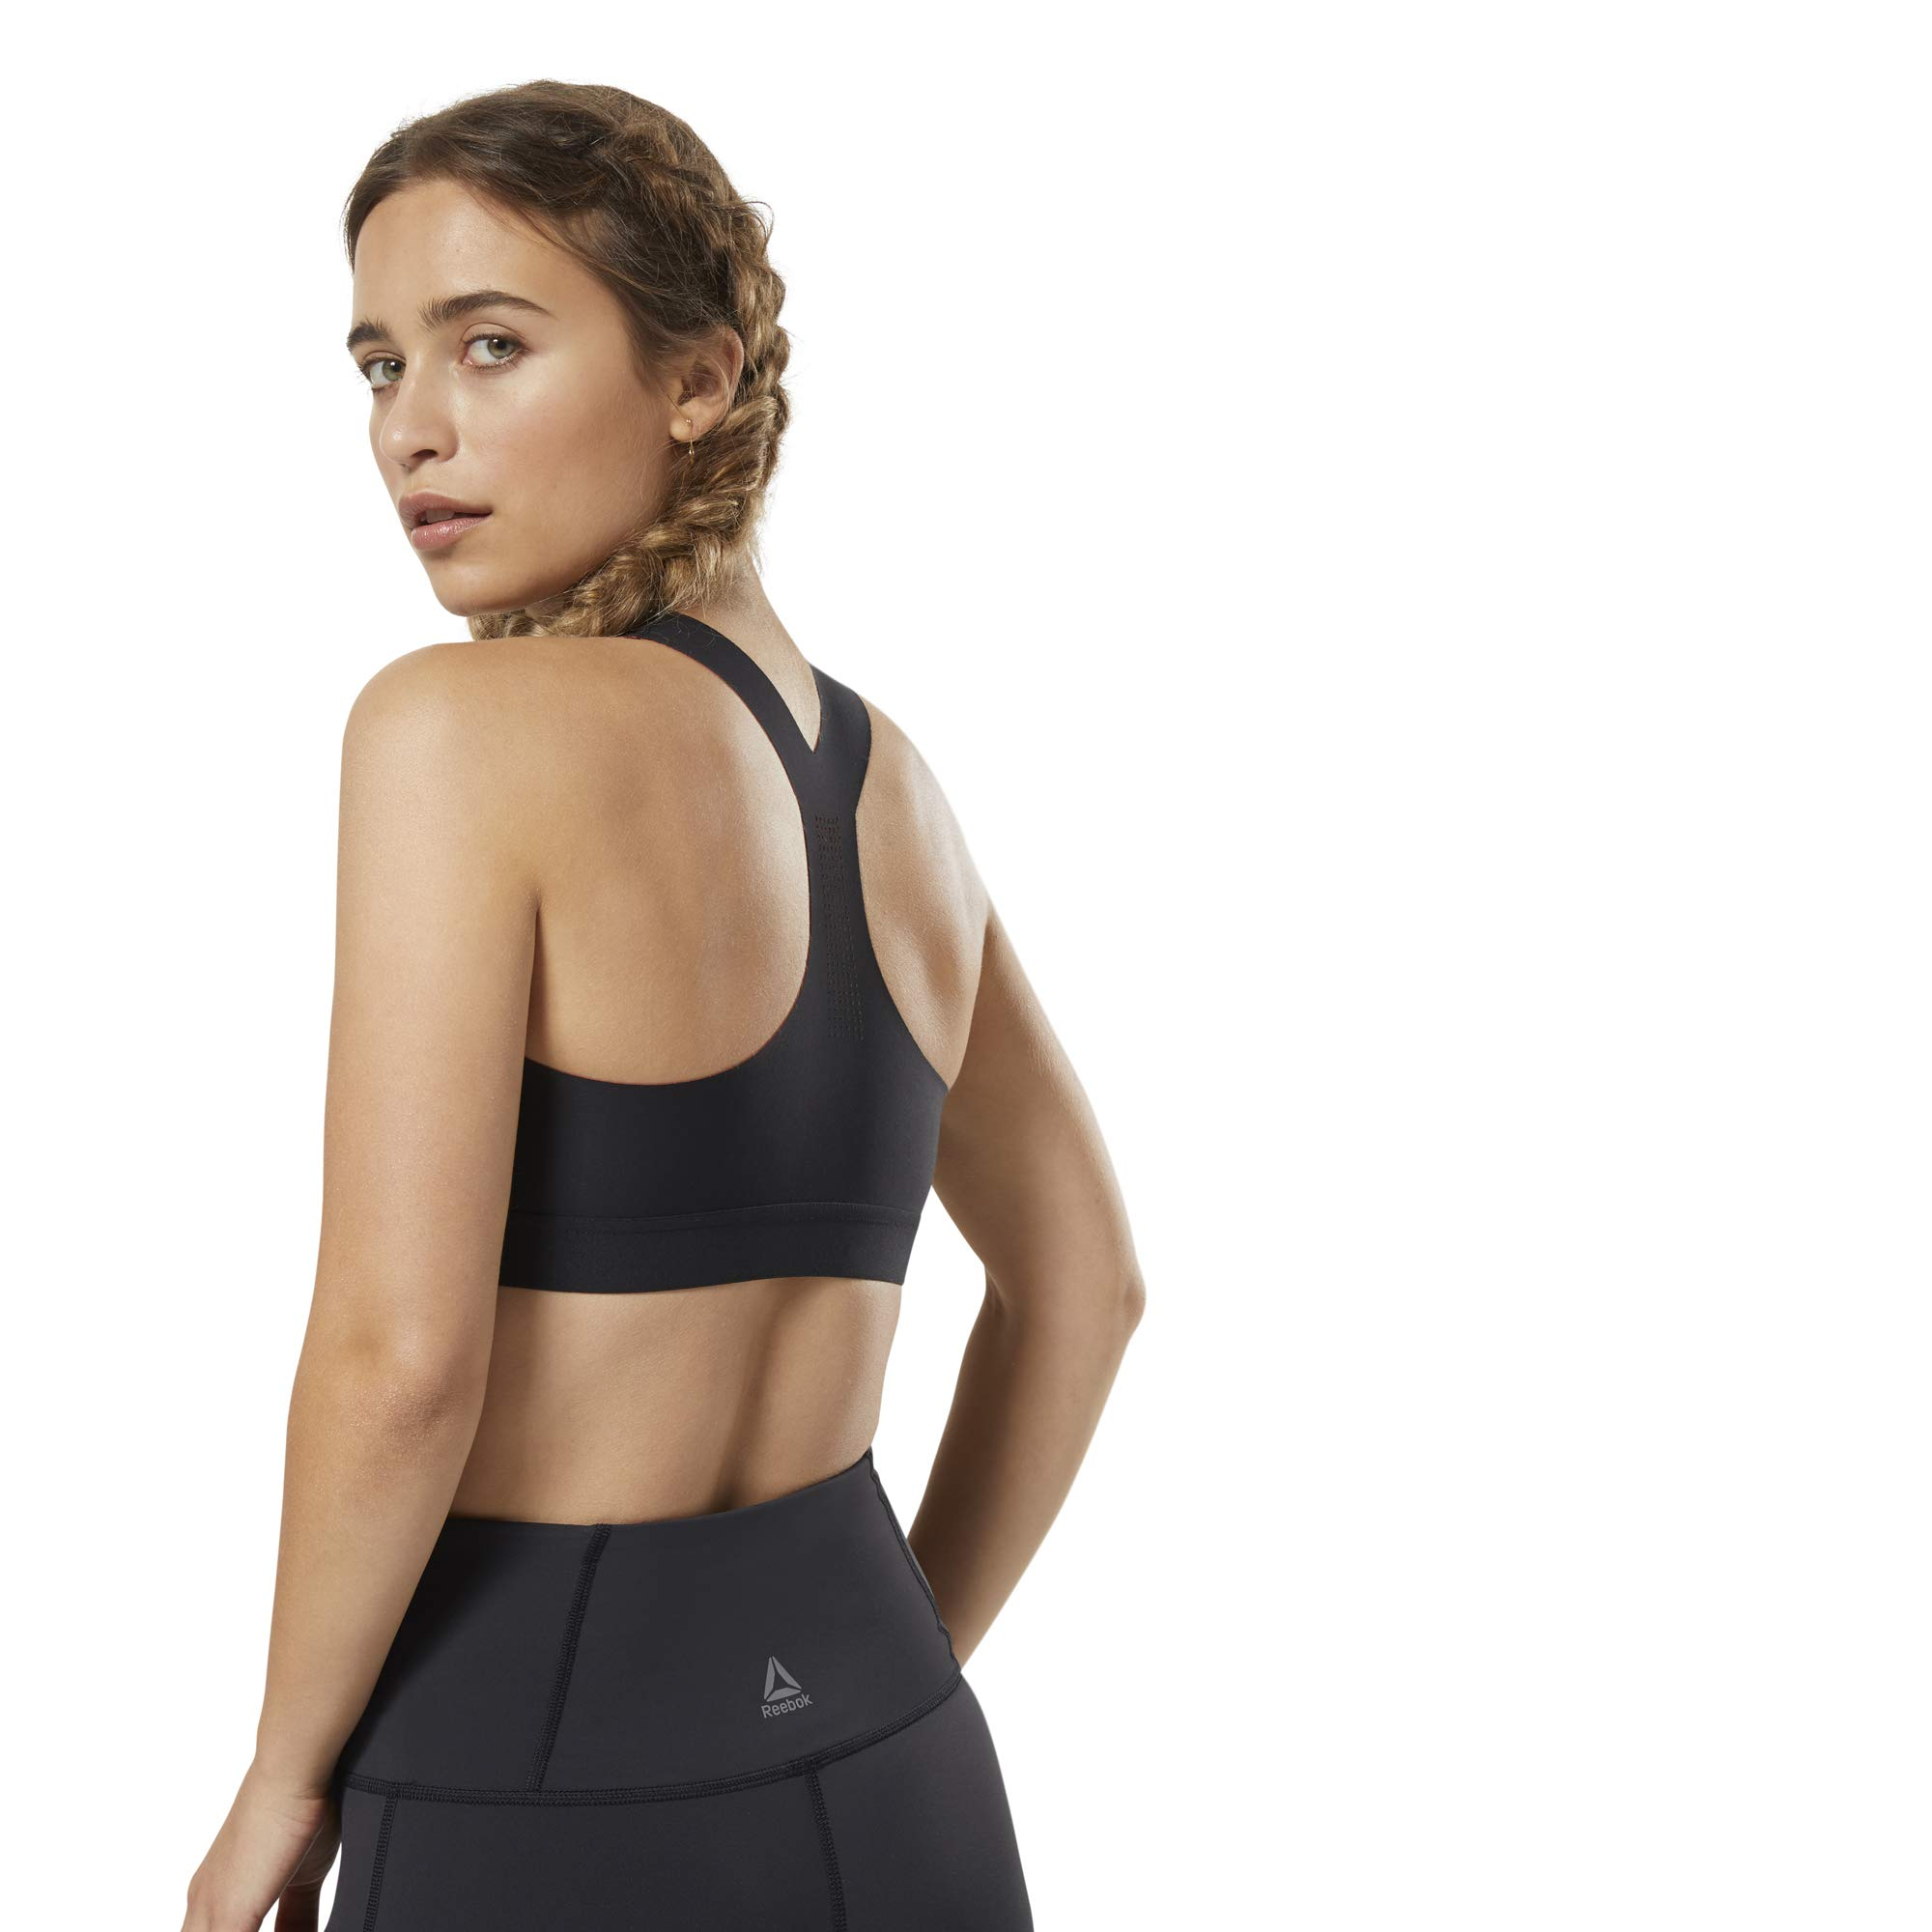 Reebok Puremove Bra, Black, Small by Reebok (Image #8)